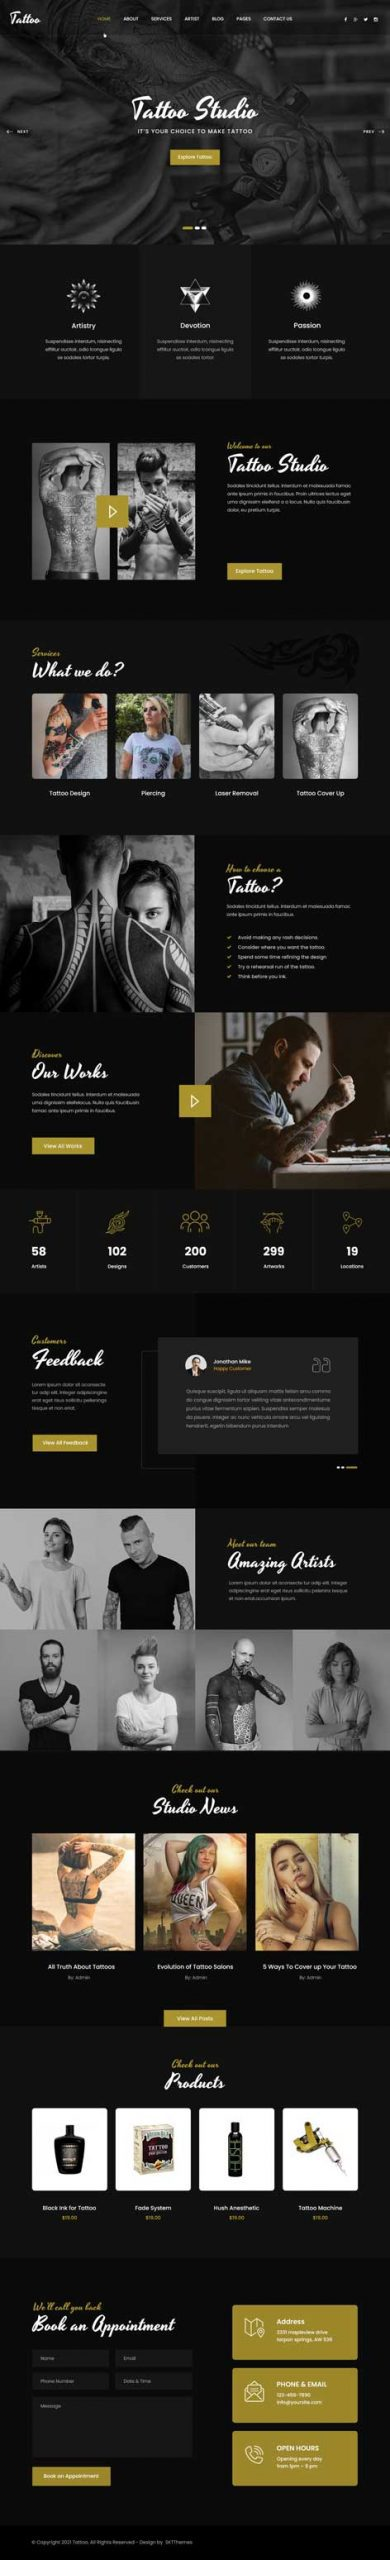 tattoo expert WordPress theme